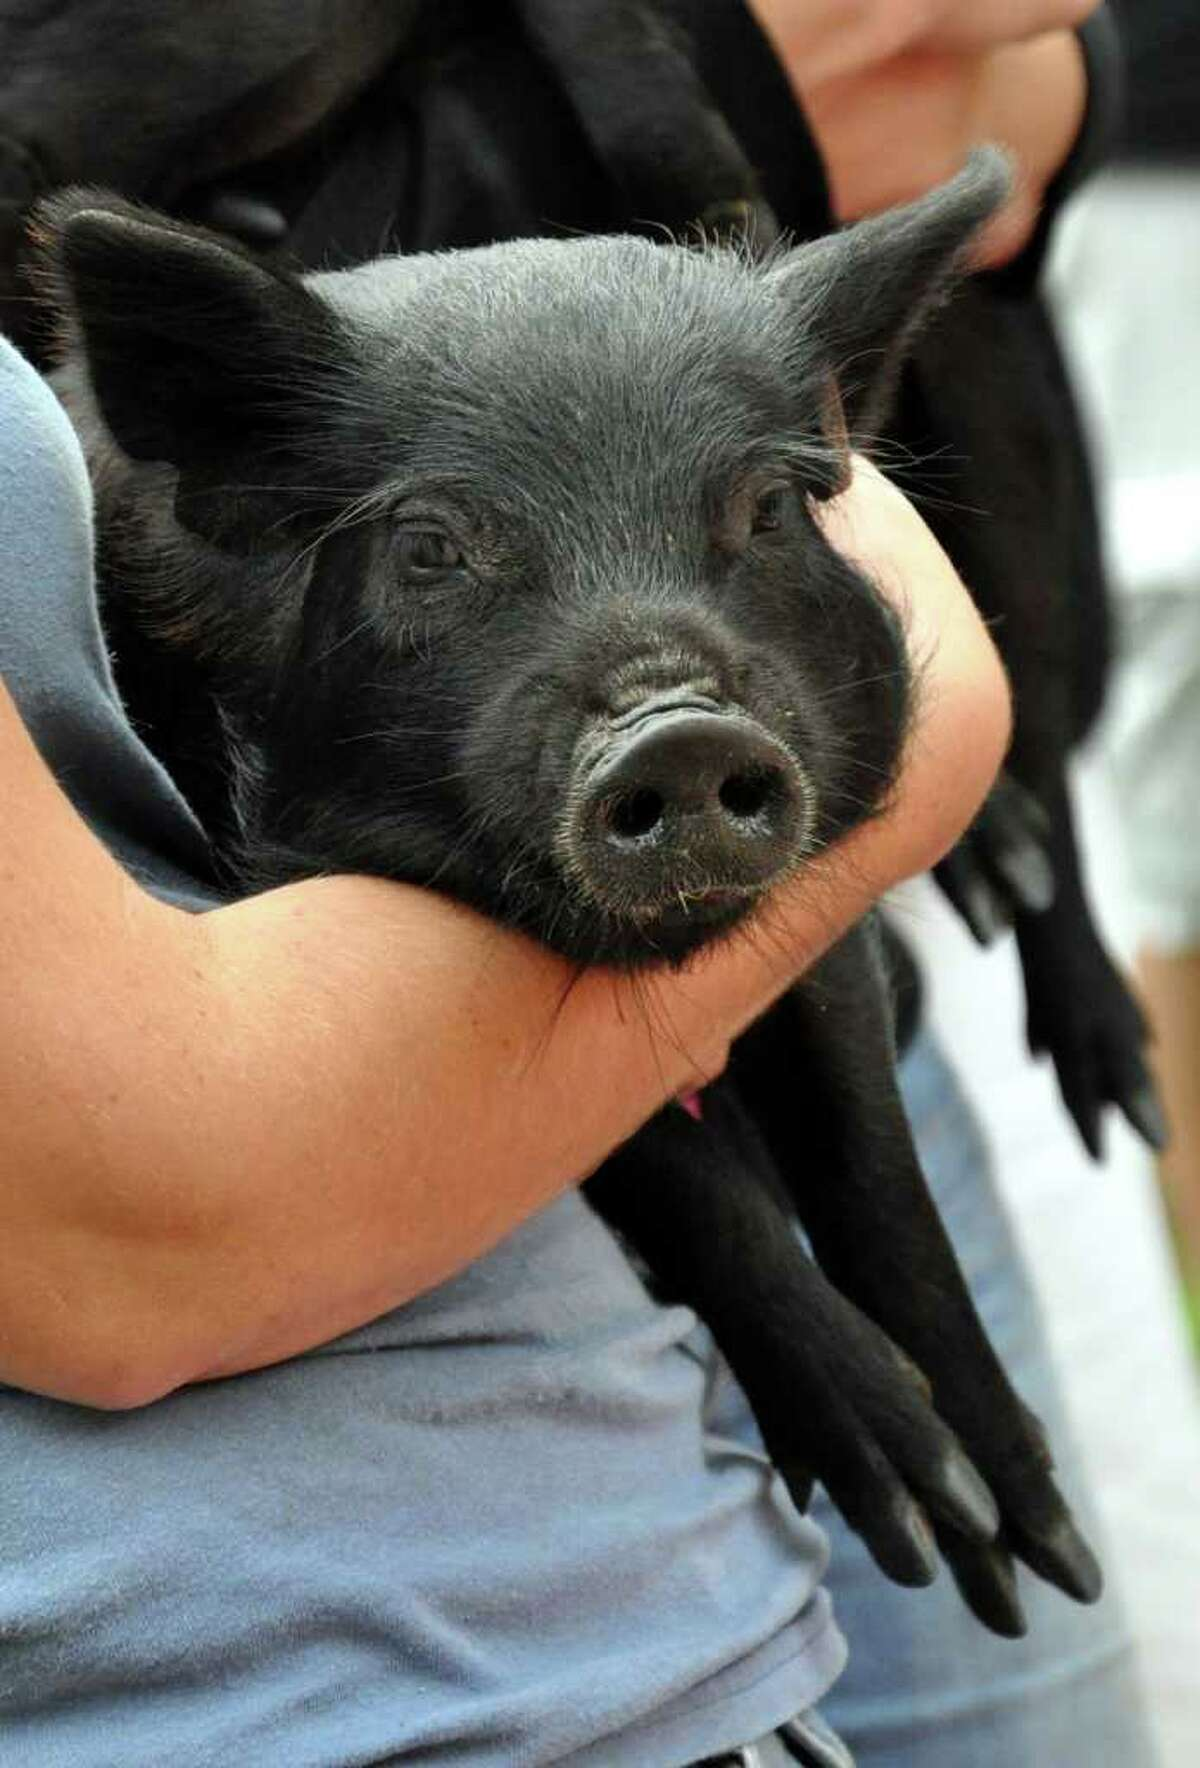 A female guinea hog rests in the arms of Farm Manager Victoria Marr after arriving at the Stamford Museum and Nature Center on Wednesday, Sept. 28, 2011. Two piglets were donated to the center from the Beardsley Zoo.